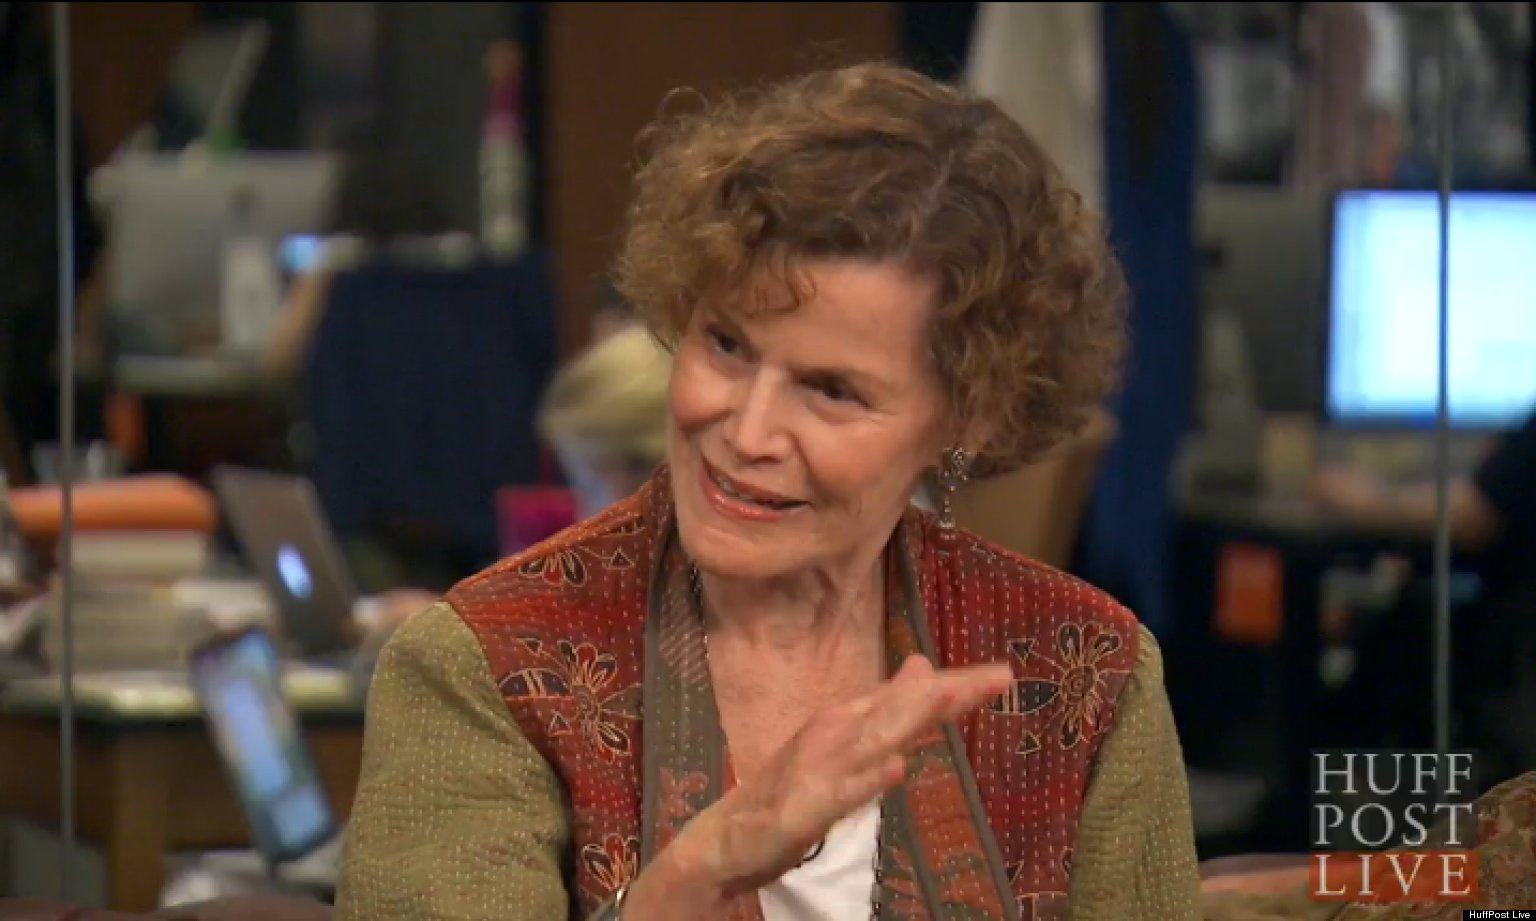 censorship in judy blume In 24 lessons, judy blume will show you how to develop vibrant characters and hook your readers the honest, everyday struggles of judy blume's characters resonate with millions of readers now, she's your instructor judy invites you to discover your own process by hearing what worked for her.